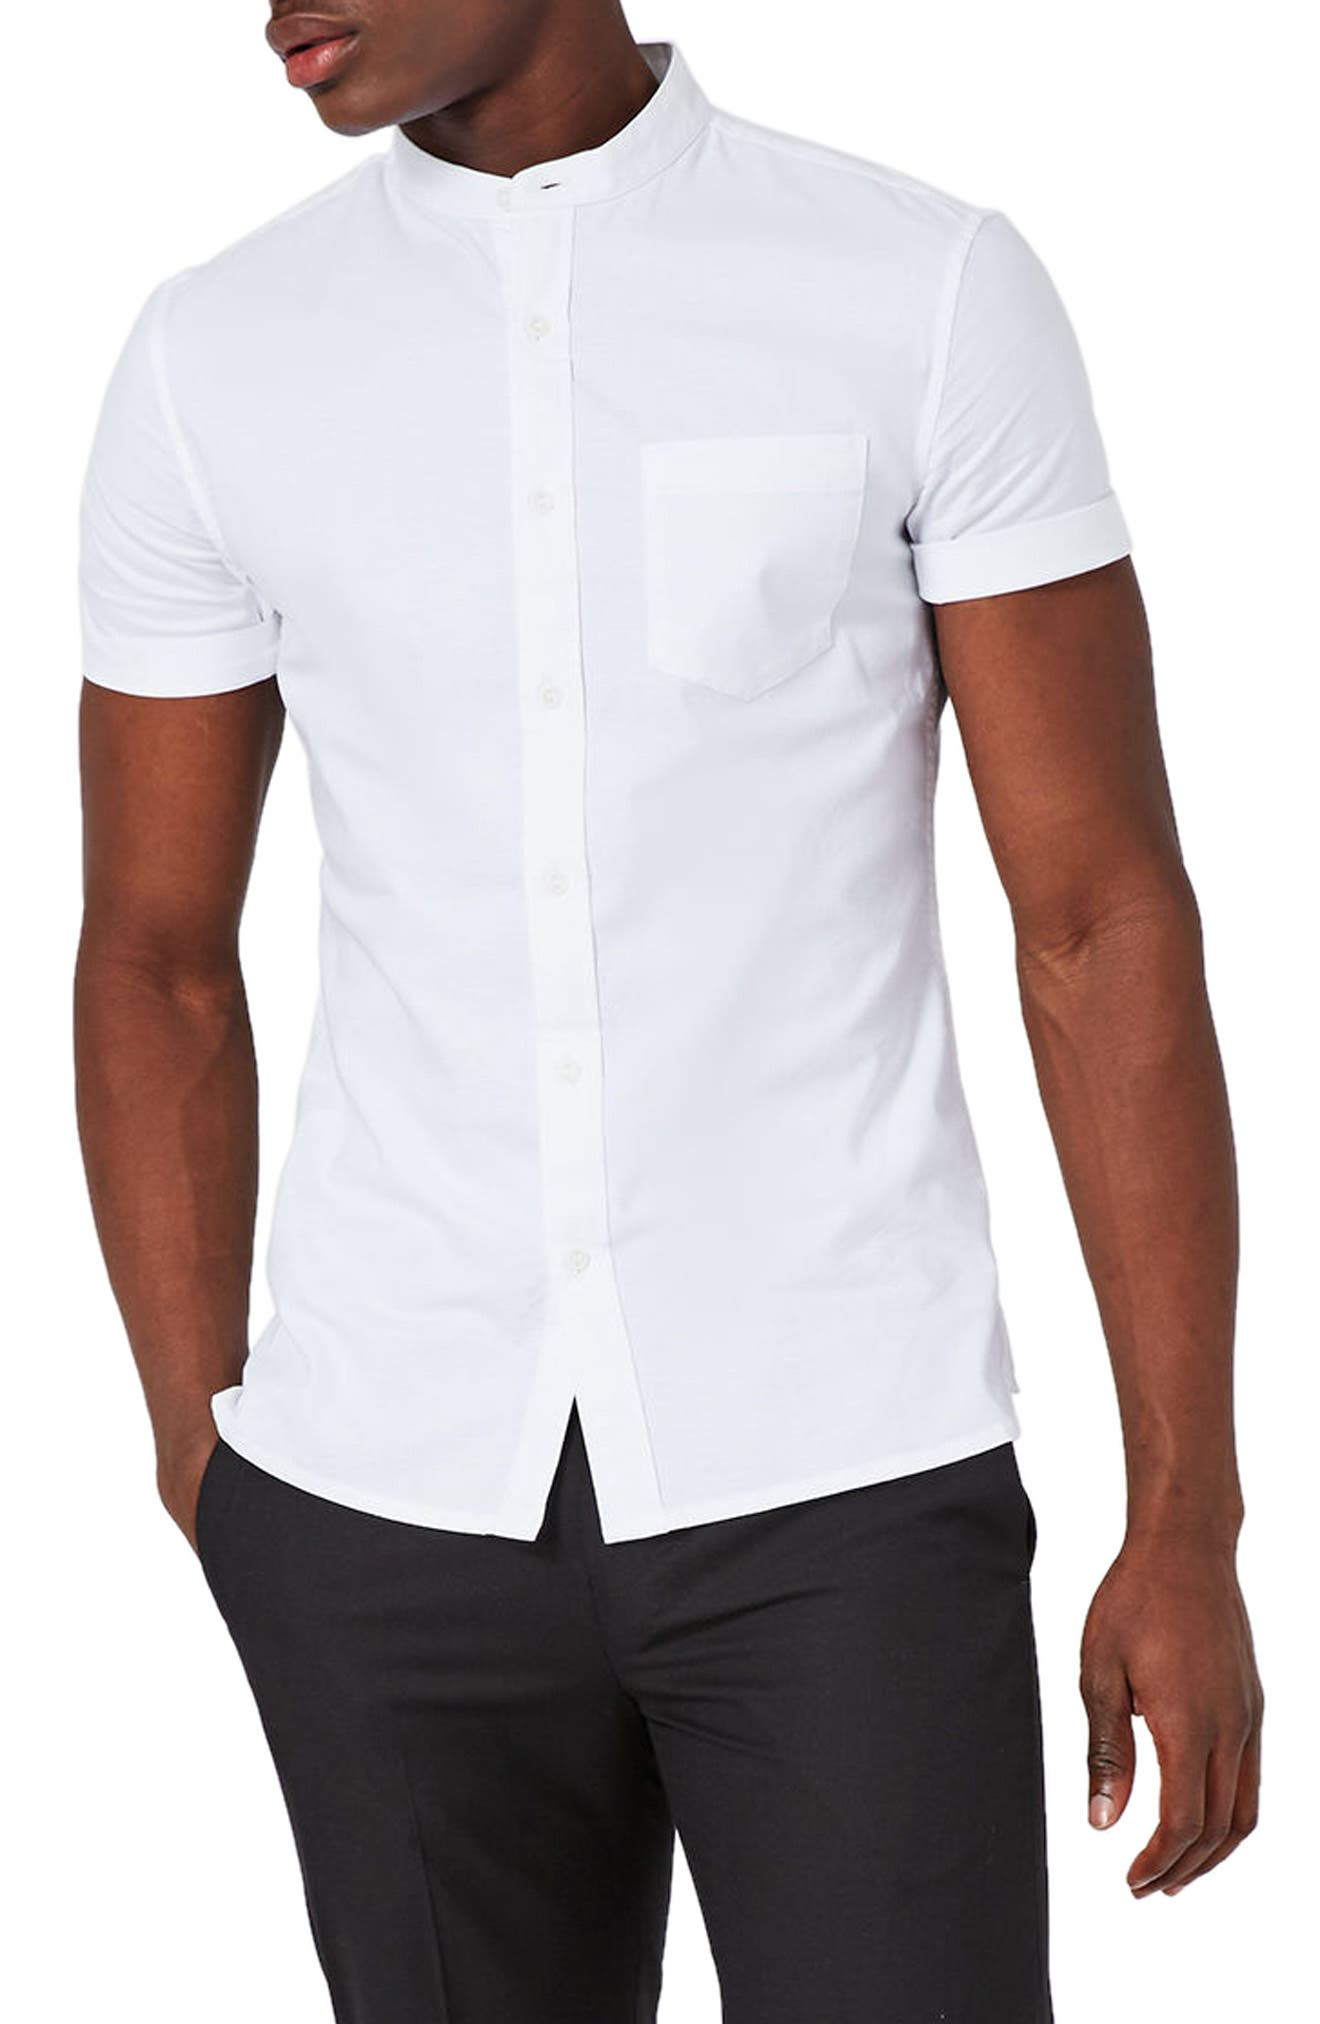 Alternate Image 1 Selected - Topman Classic Fit Stand Collar Oxford Shirt